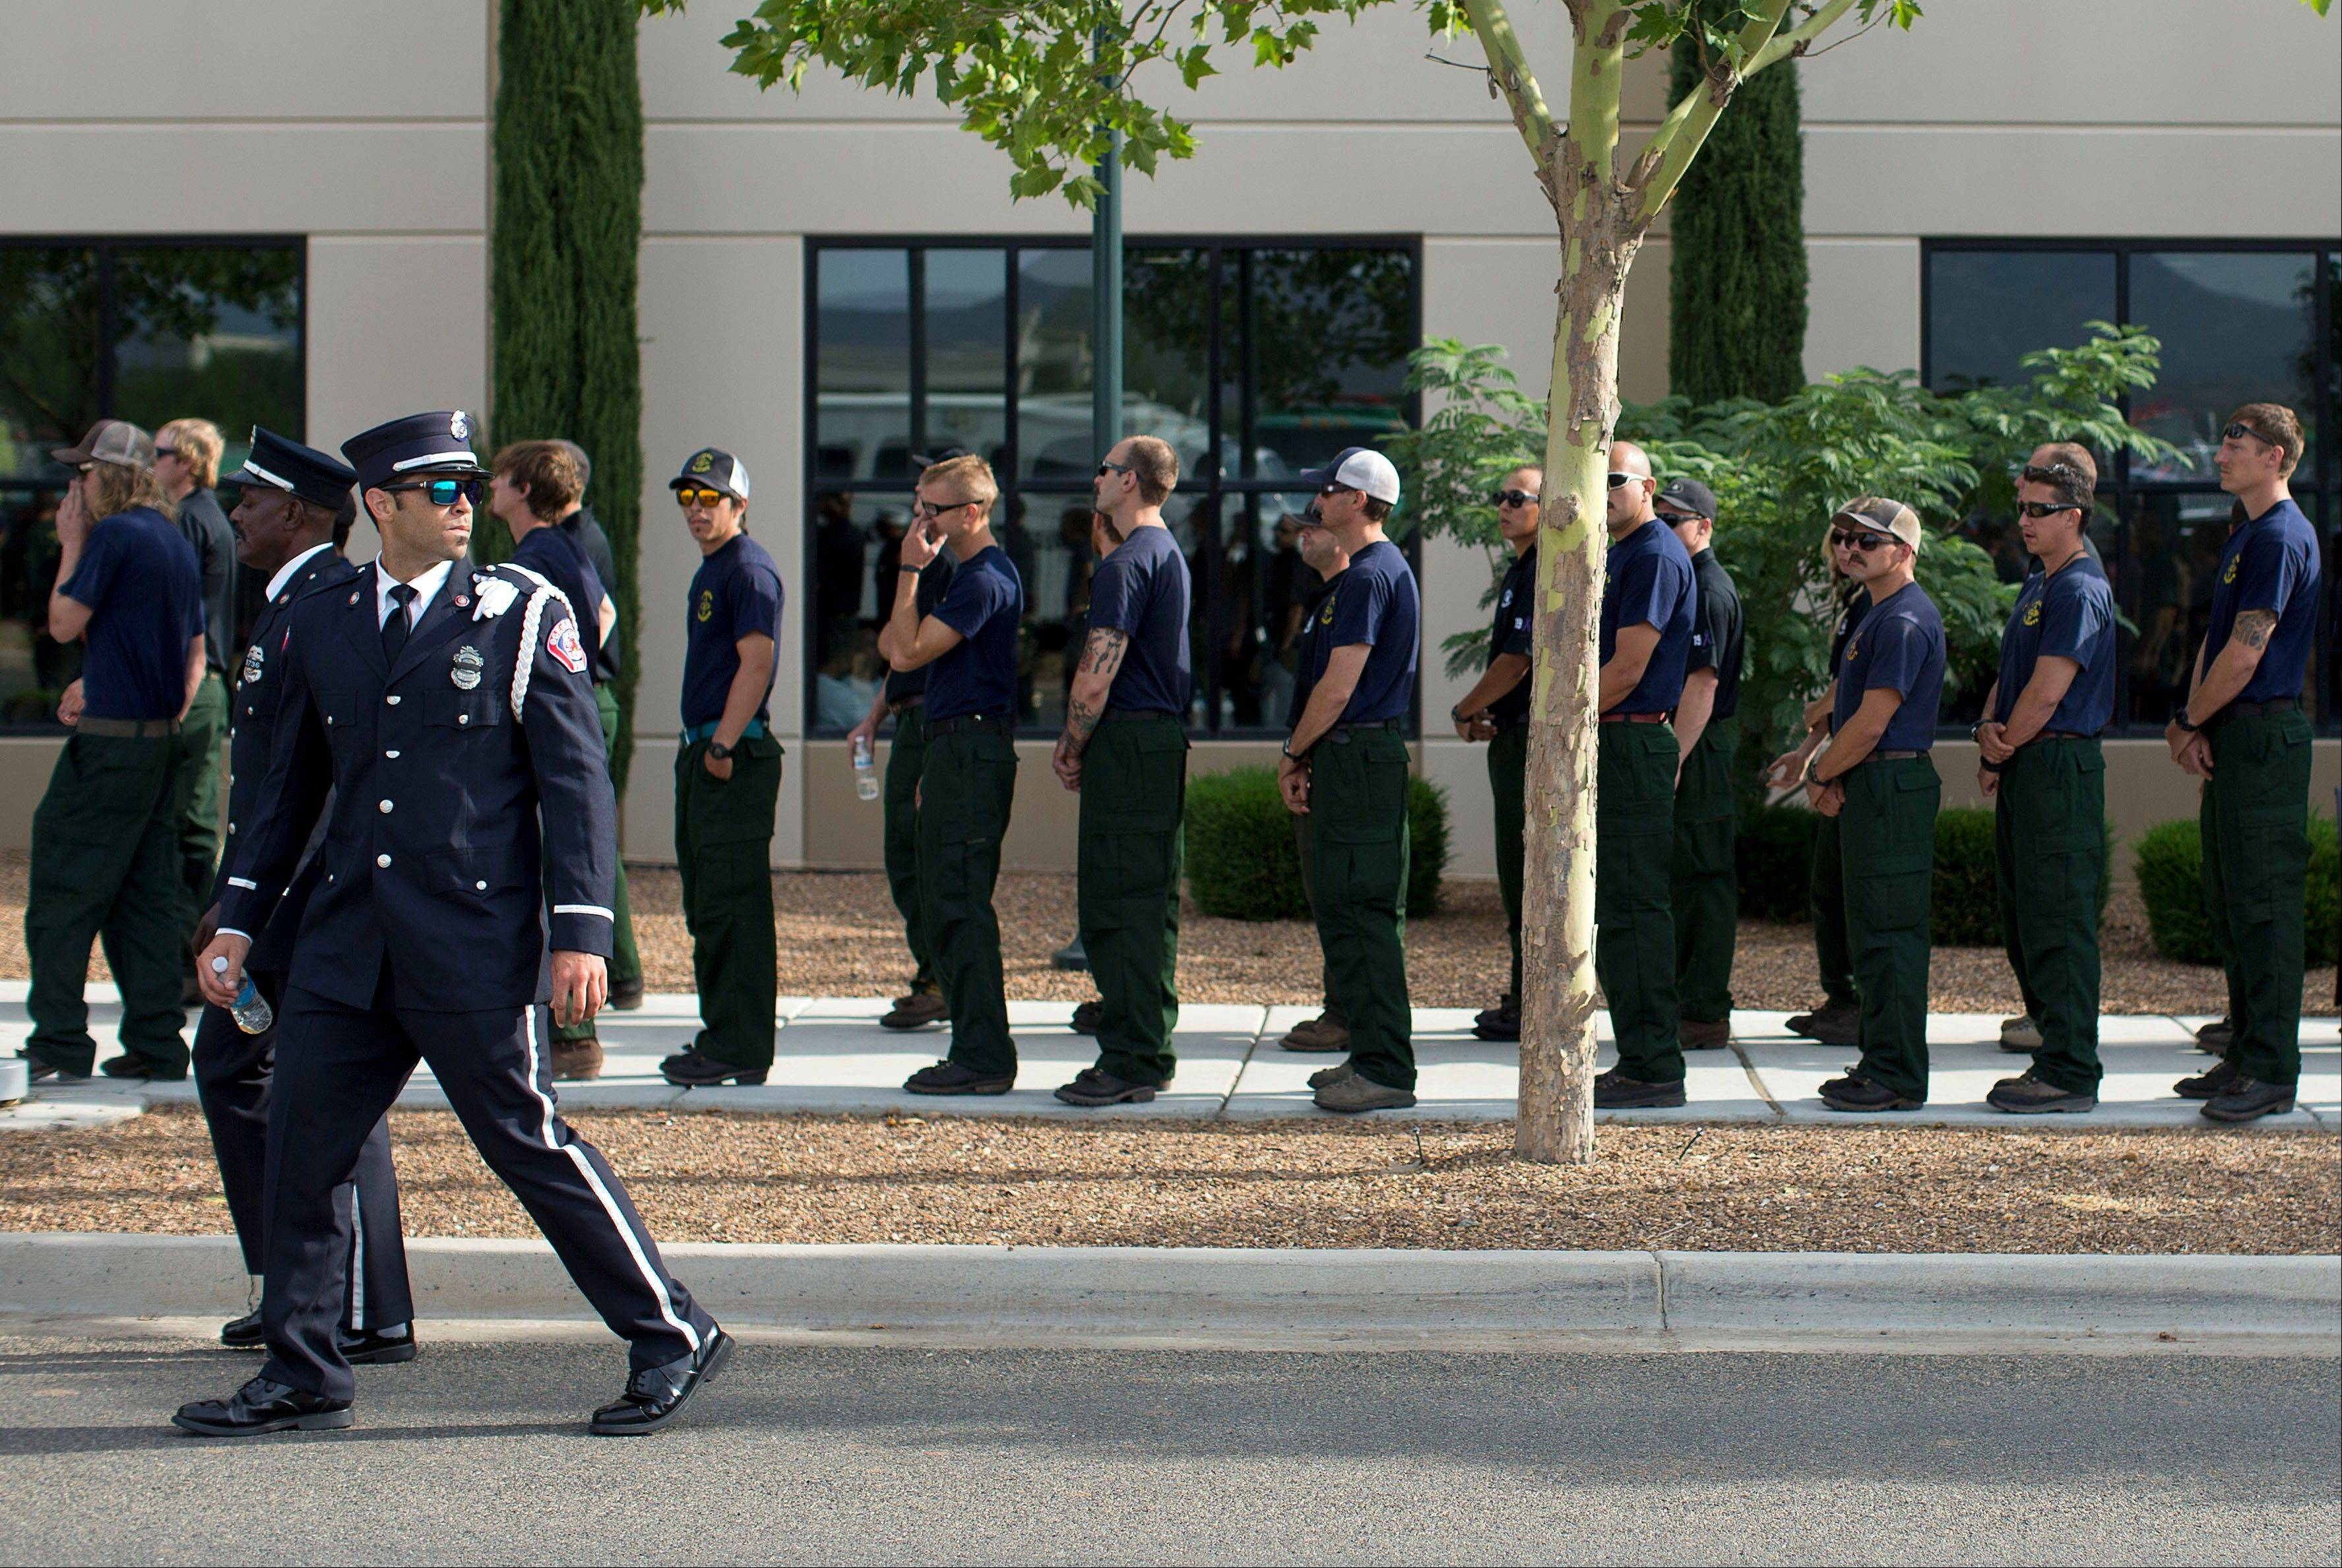 Firefighters from around the country line up outside Tim's Toyota Center, Tuesday, July 9, 2013 in Prescott, Ariz..